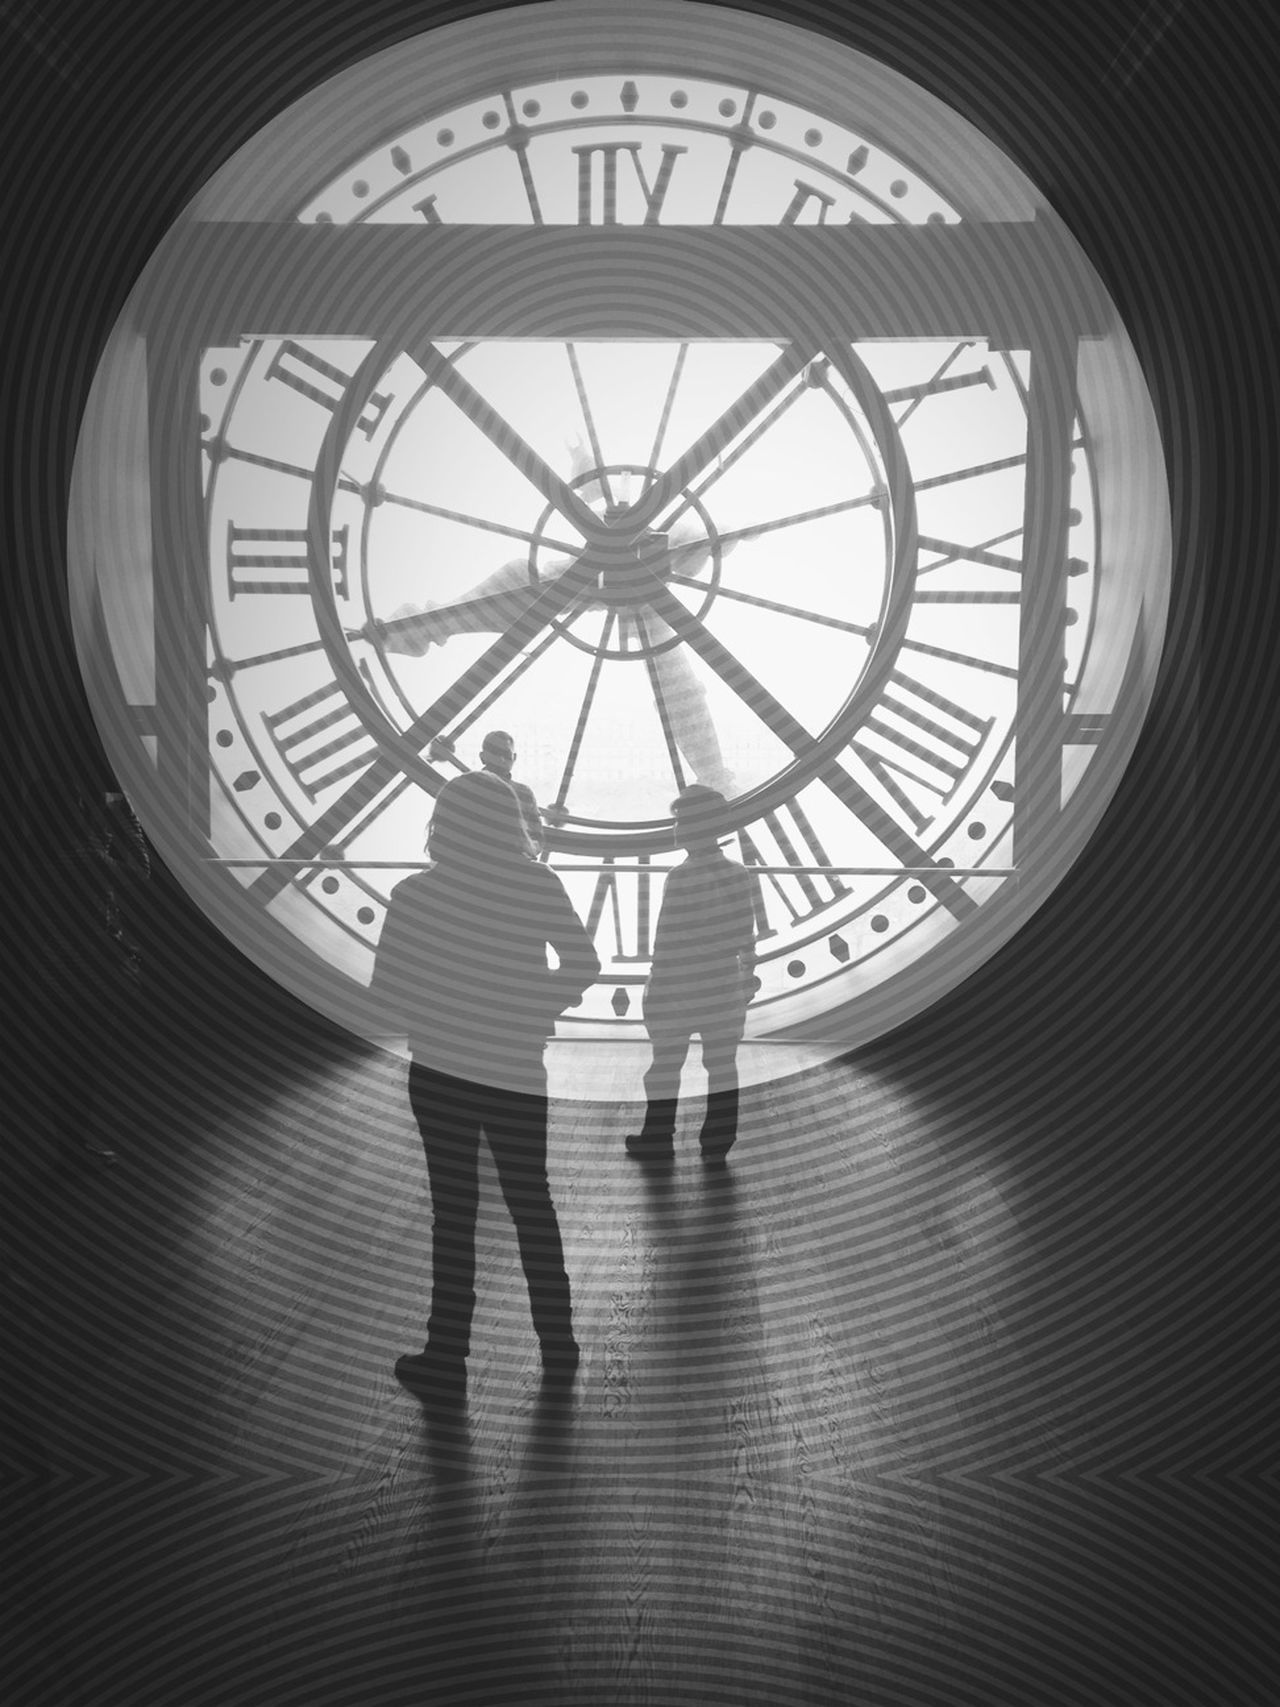 Beautiful stock photos of clock, Circle, Clock, Clock Face, Clock Tower